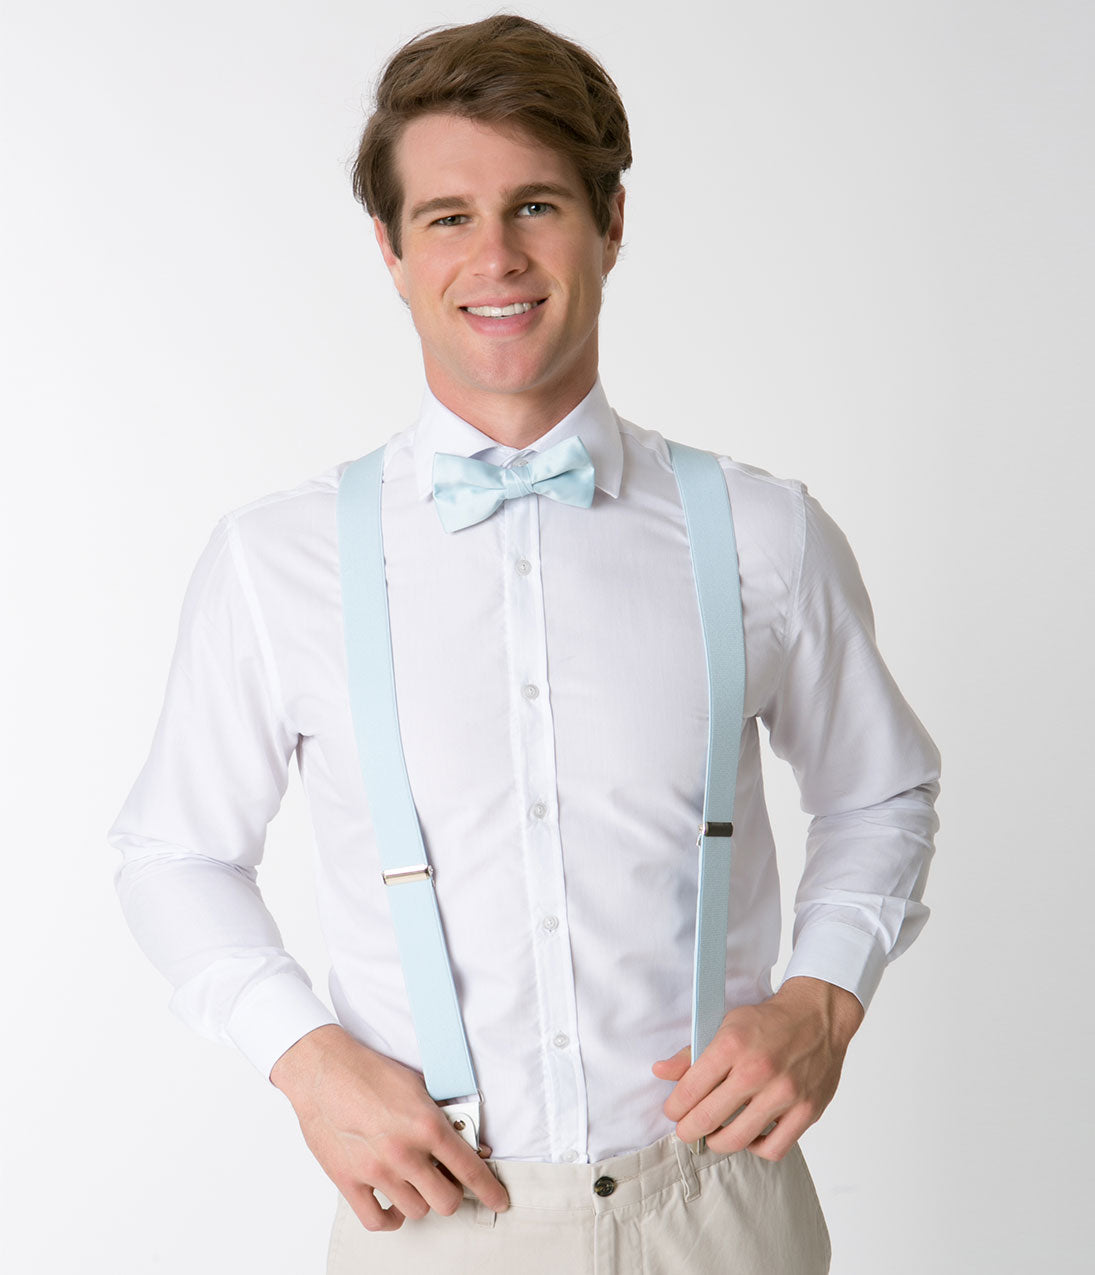 Baby Blue Adjustable Suspenders Crisp and classy, brighten your vintage ensemble with these brilliant baby blue suspenders! Adjustable straps allow for a comfy fit while the silver metal clips keep you going through the day. We're feeling dapper, darling!.Available while supplies last | Baby Blue Adjustable Suspenders